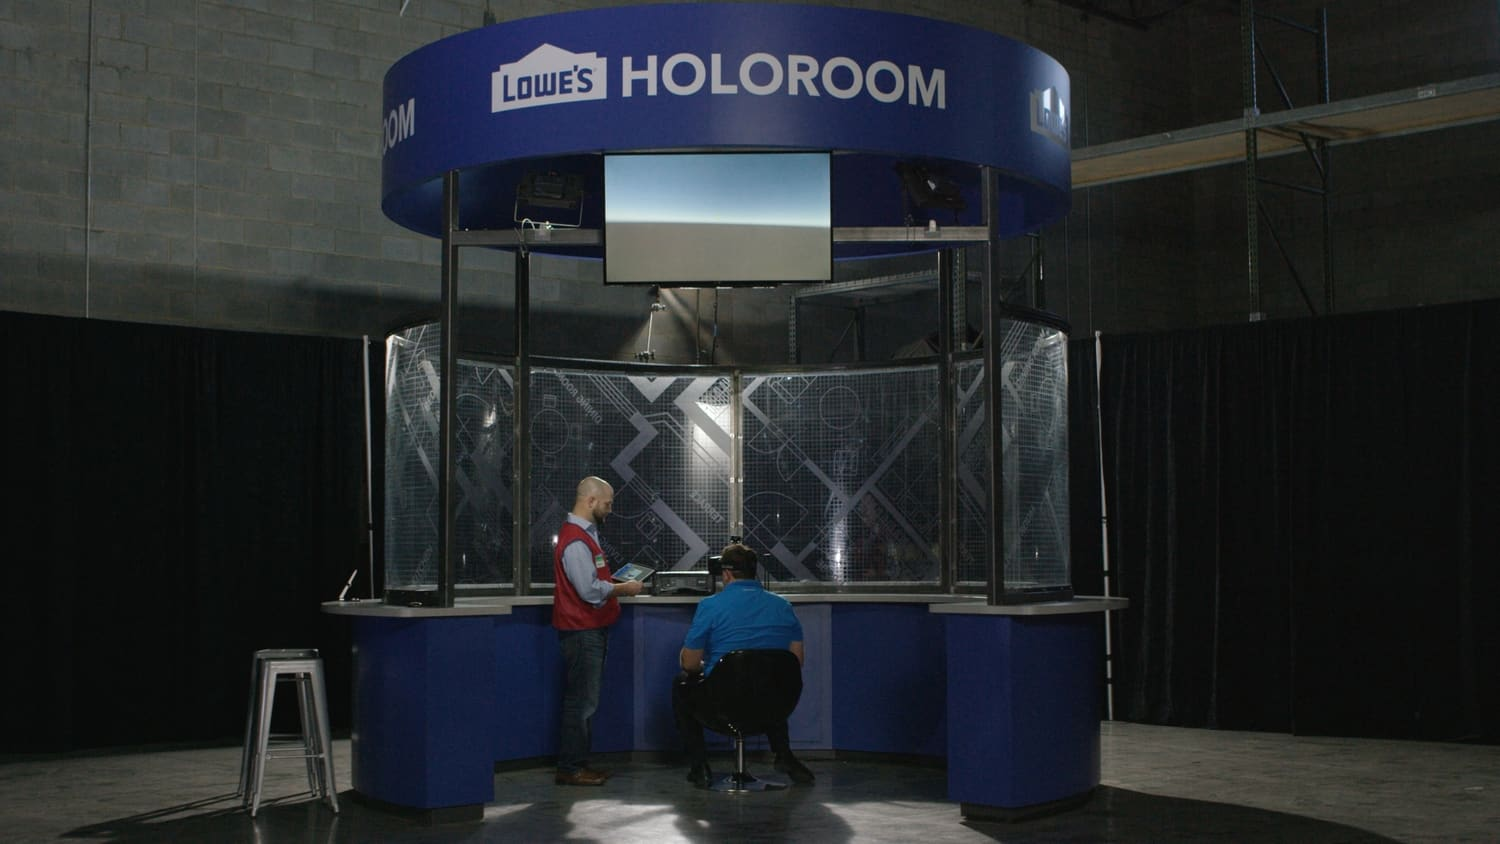 Lowes VR and AR initiatives - Holoroom